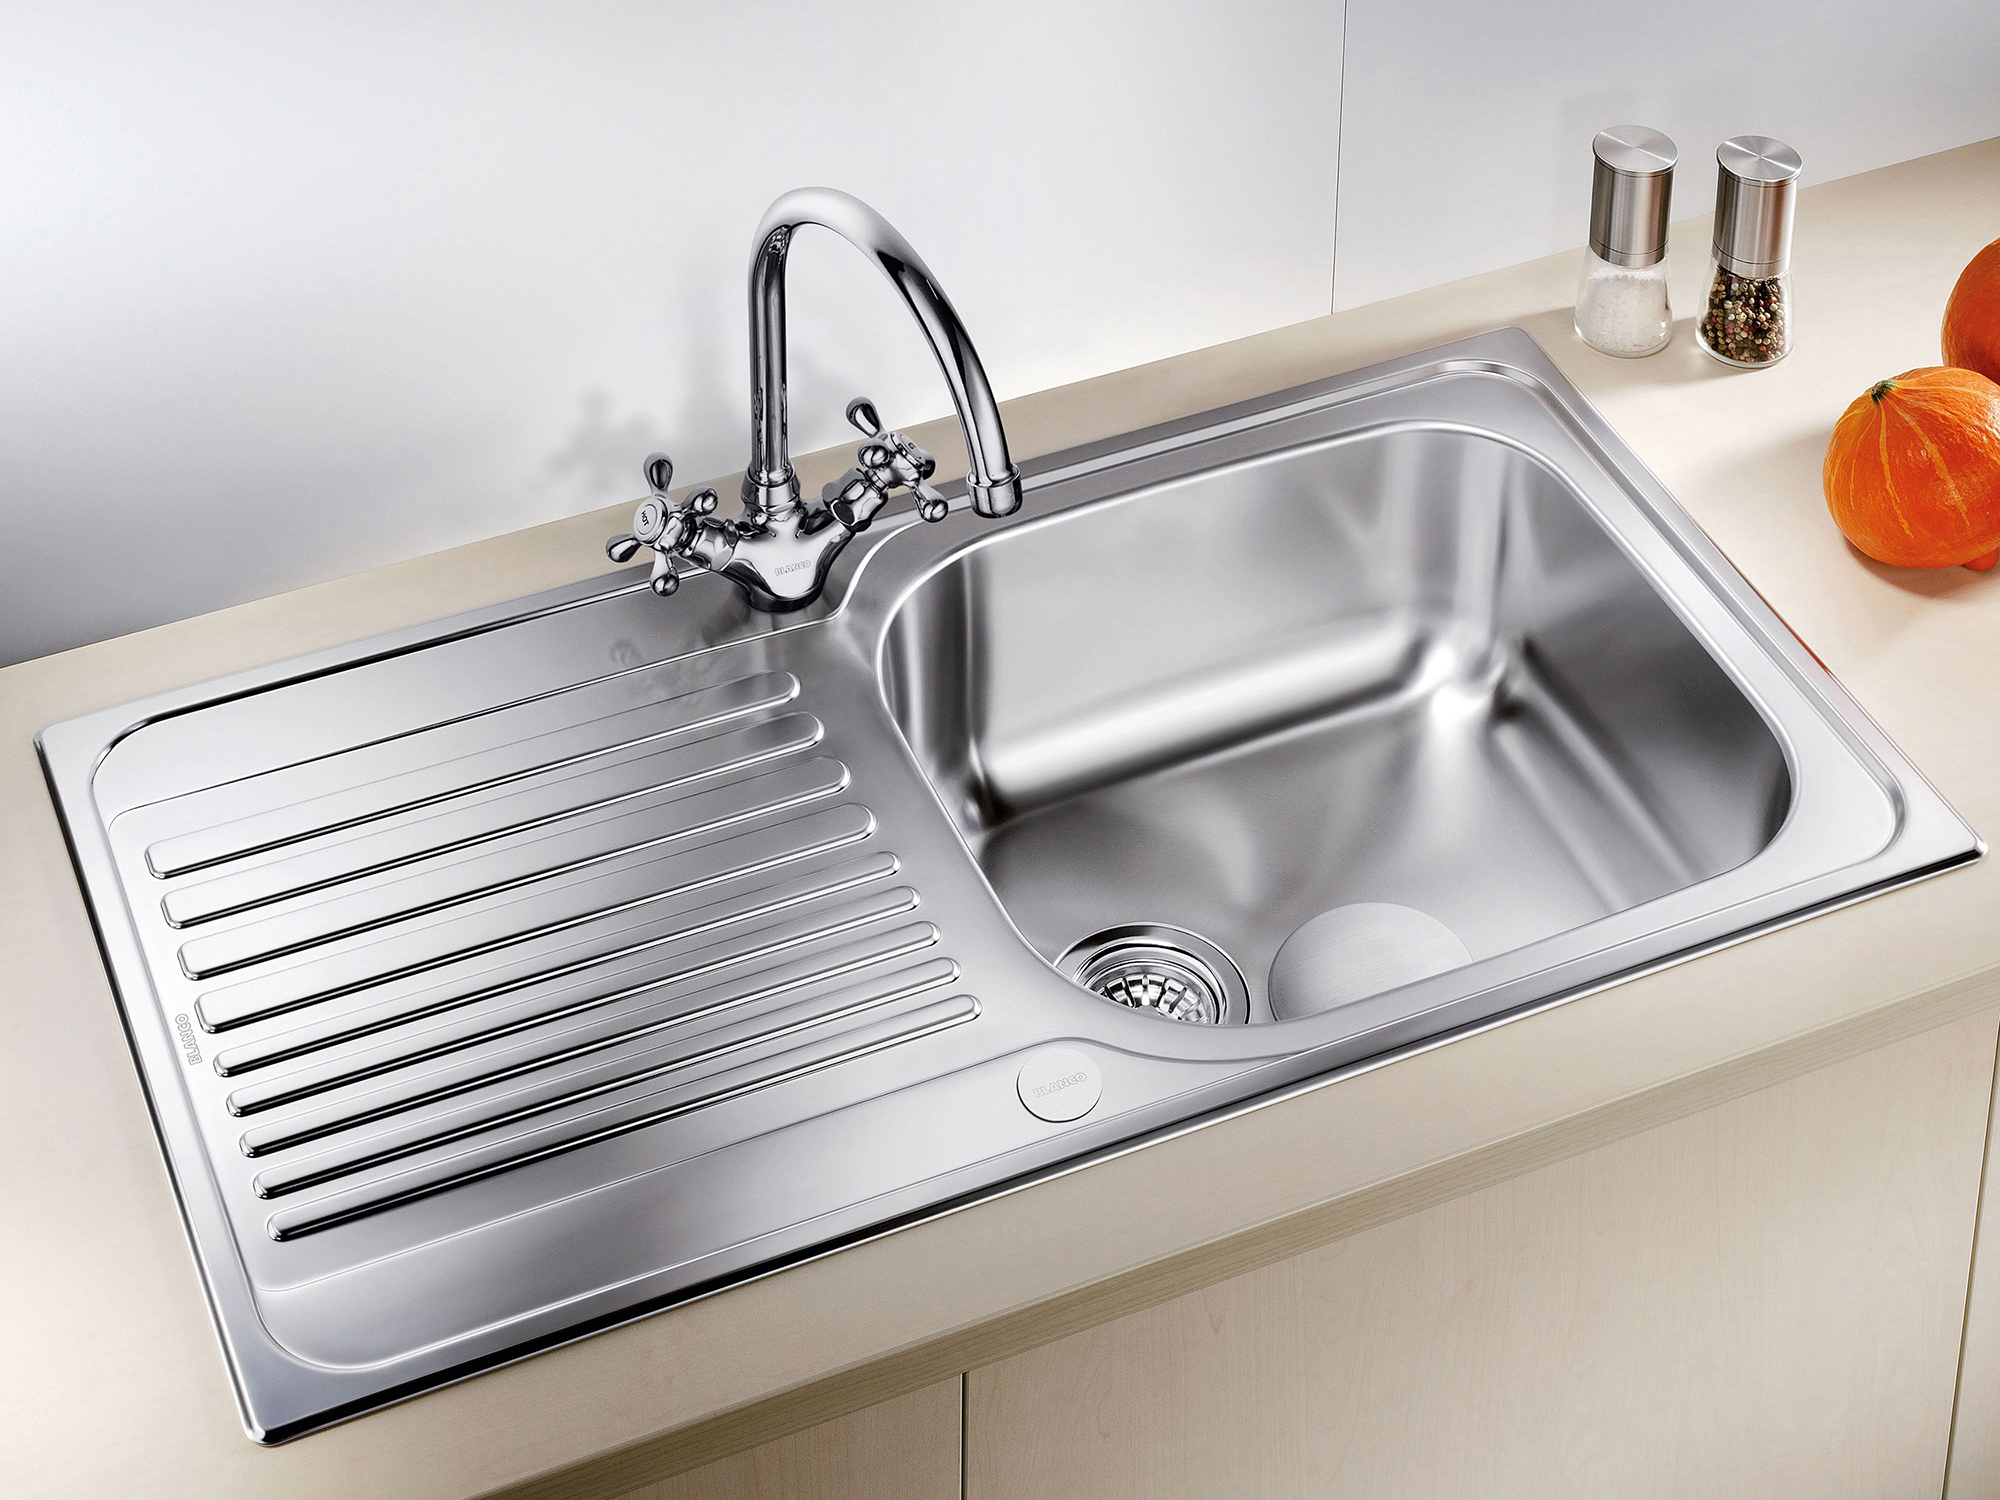 Blanco sinks and taps now available from HPP